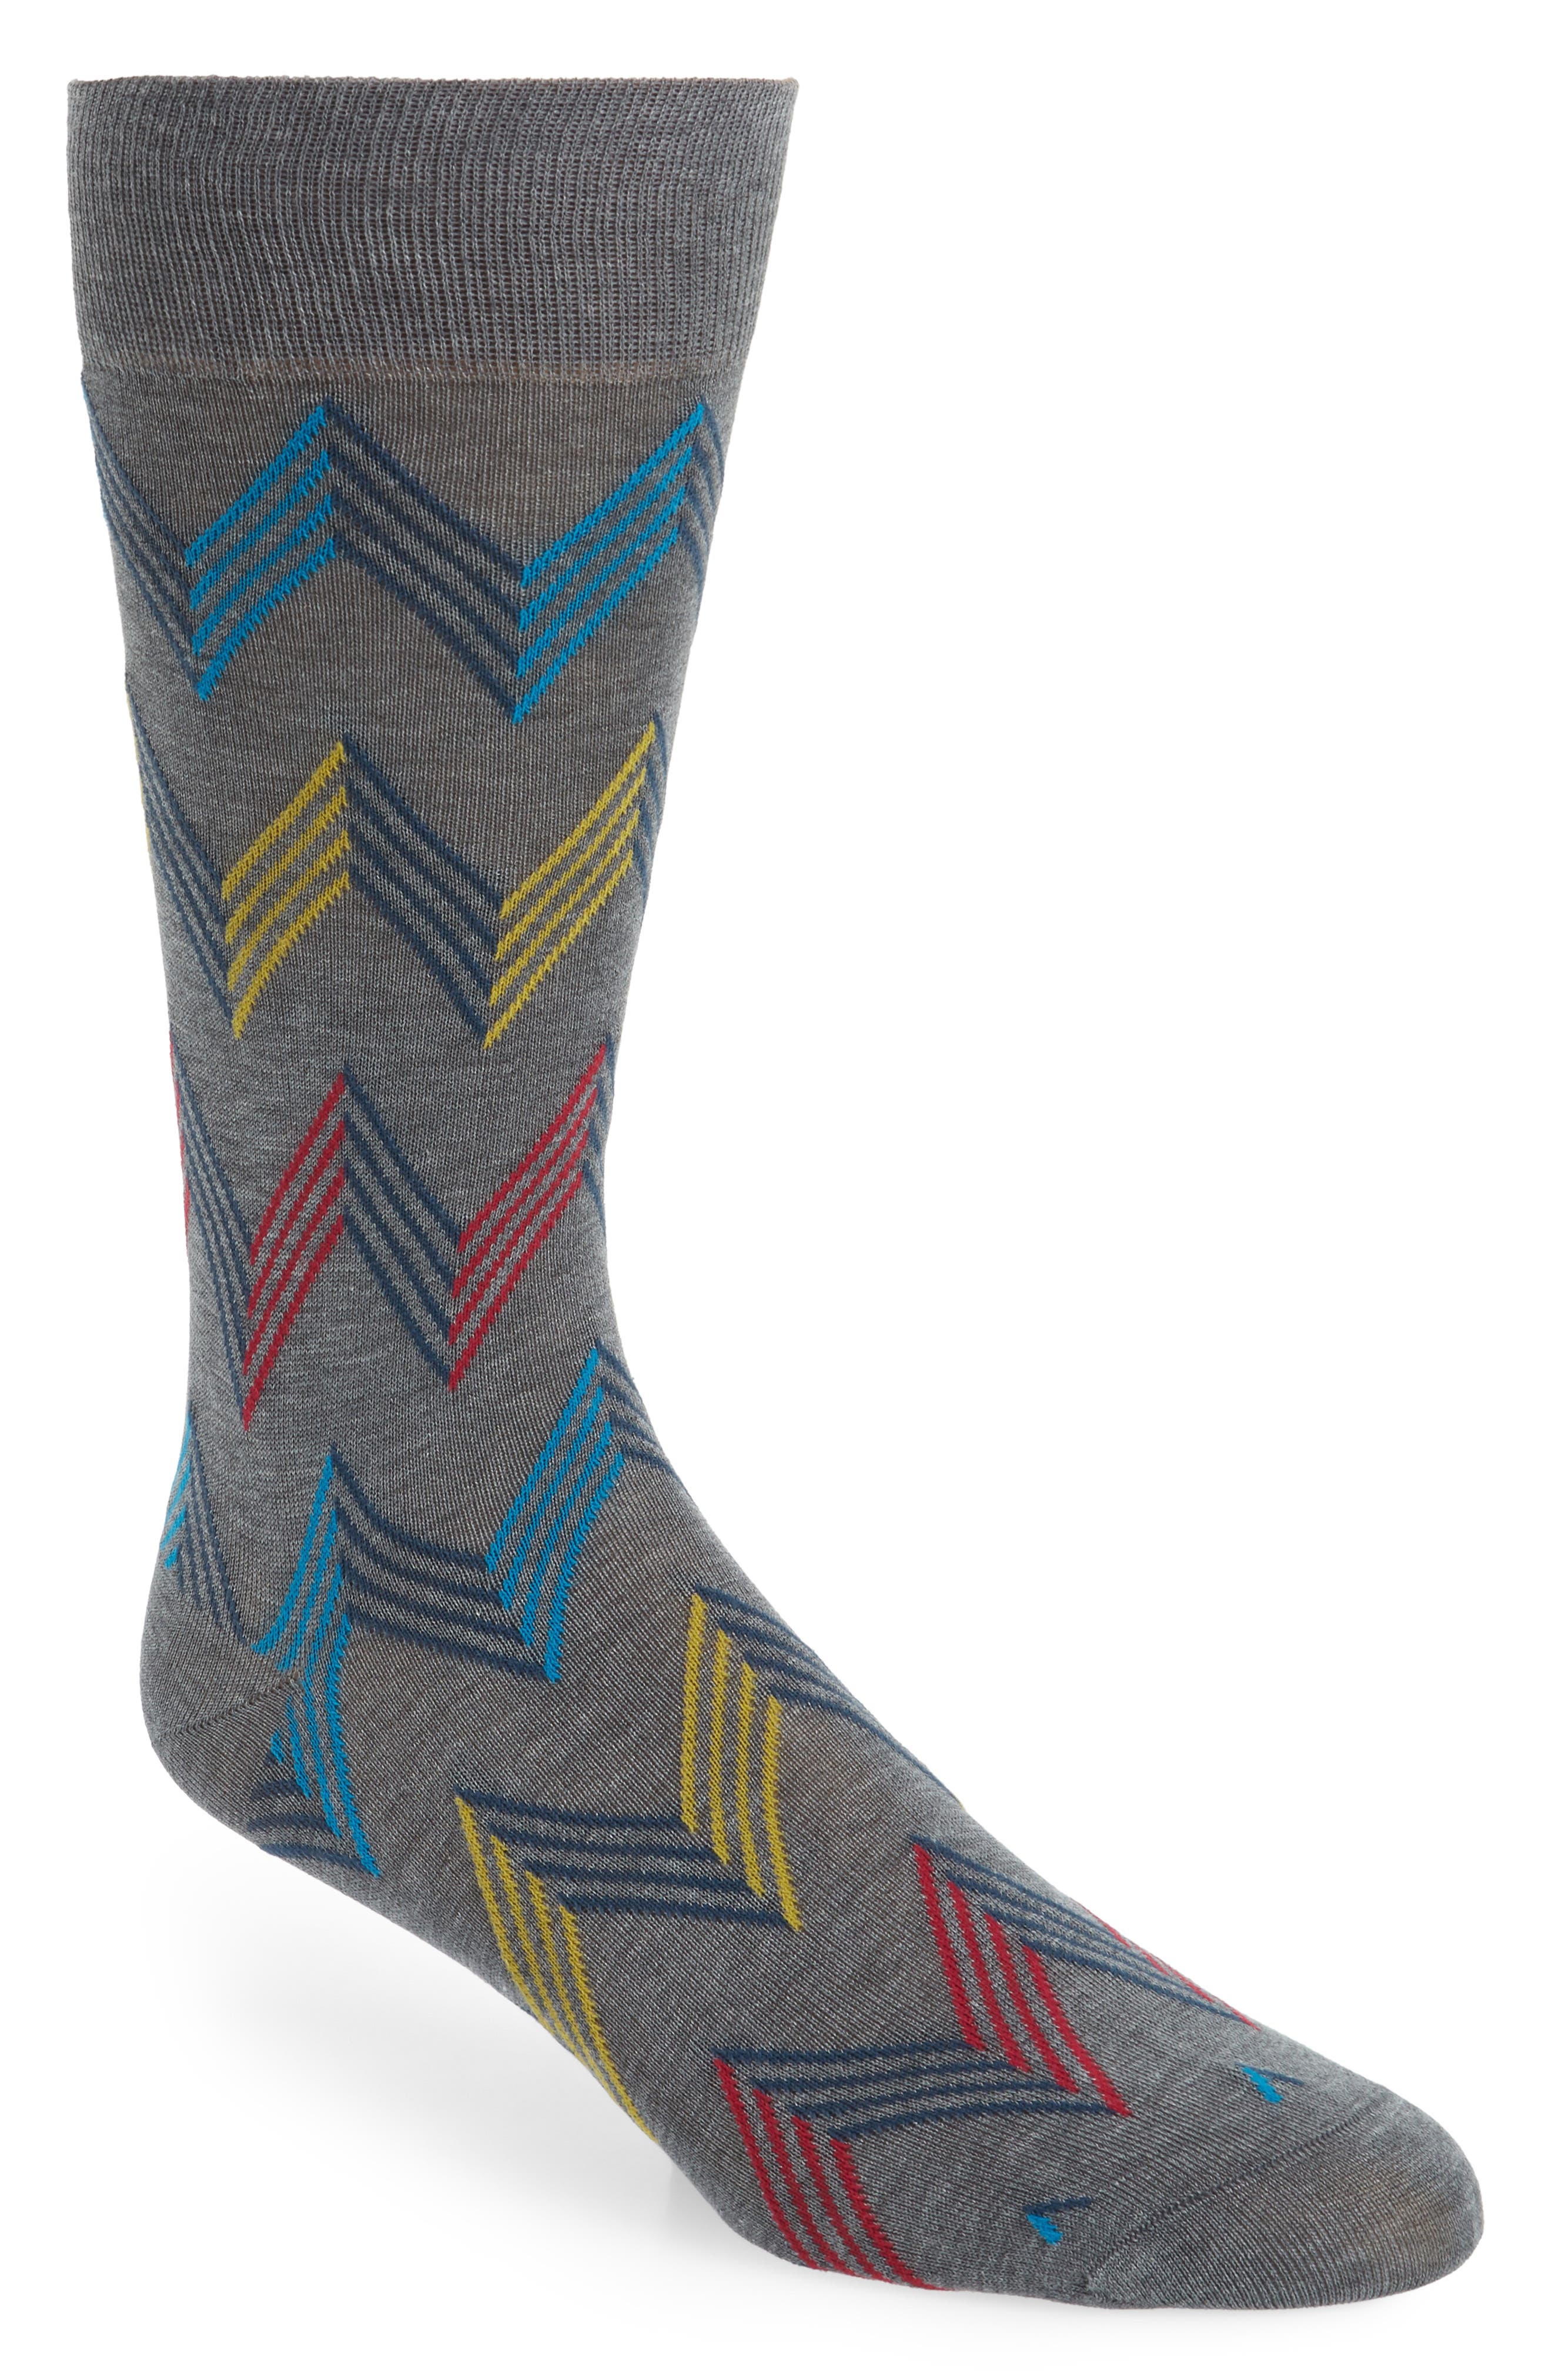 Zigzag Socks,                         Main,                         color, 031